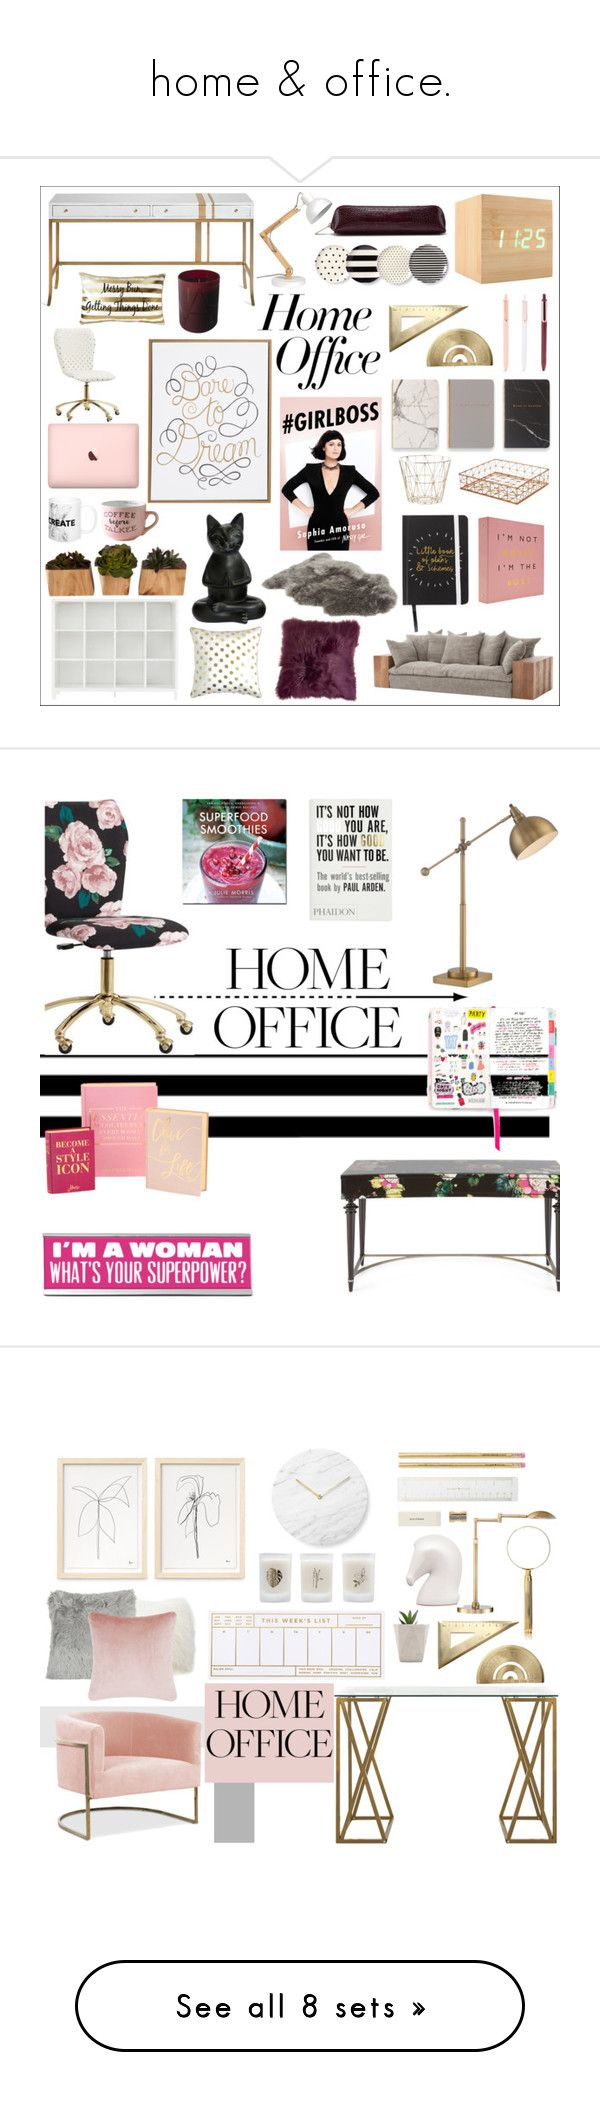 """home & office."" by micahlouuu ❤ liked on Polyvore featuring interior, interiors, interior design, home, home decor, interior decorating, PBteen, UGG, Kate Spade and Eccolo"